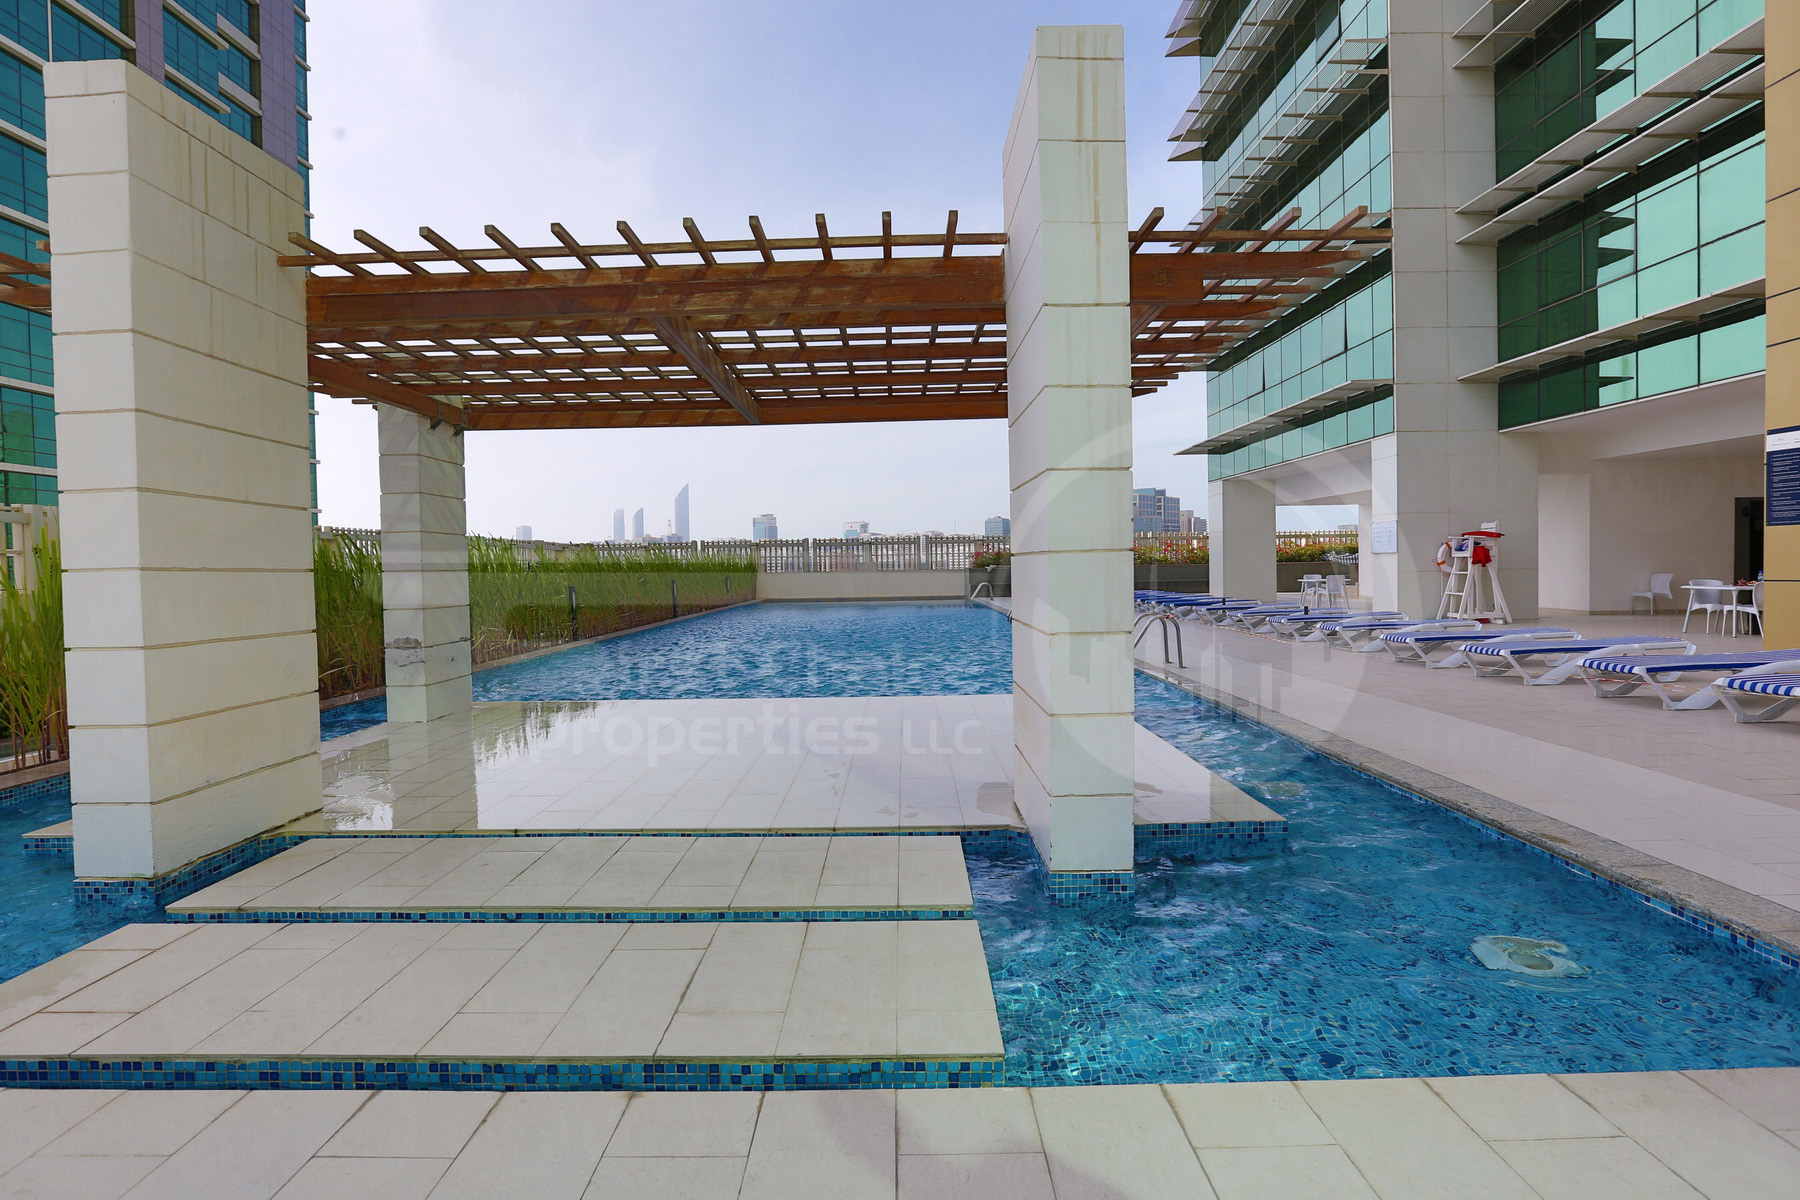 Studio - 1BR - 2BR - 3BR - 4BR Apartment - Abu Dhabi - UAE - Al Reem Island - Tala Tower - Outside View.JPG